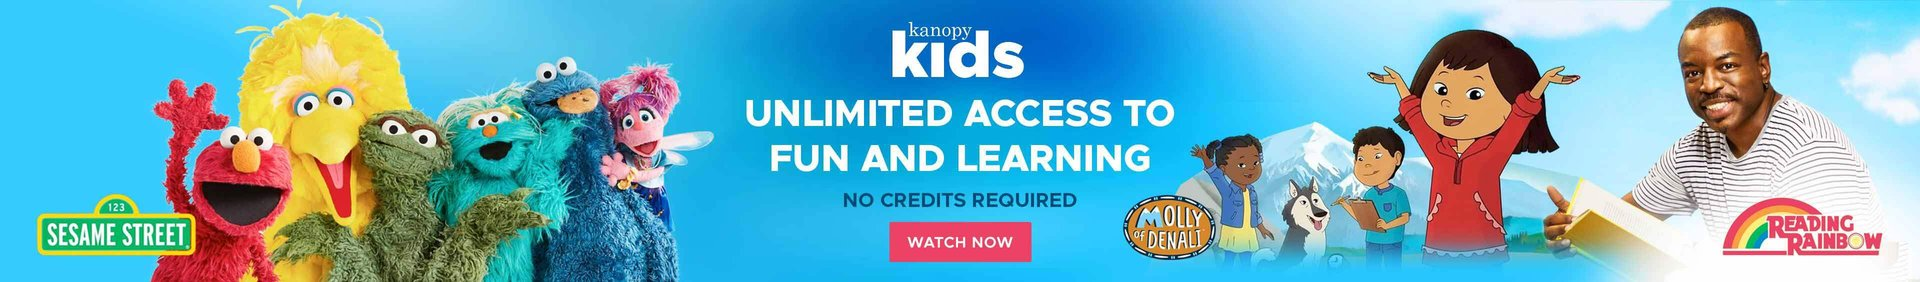 Kids Kanopy Unlimited access to fun and learning text with video stills